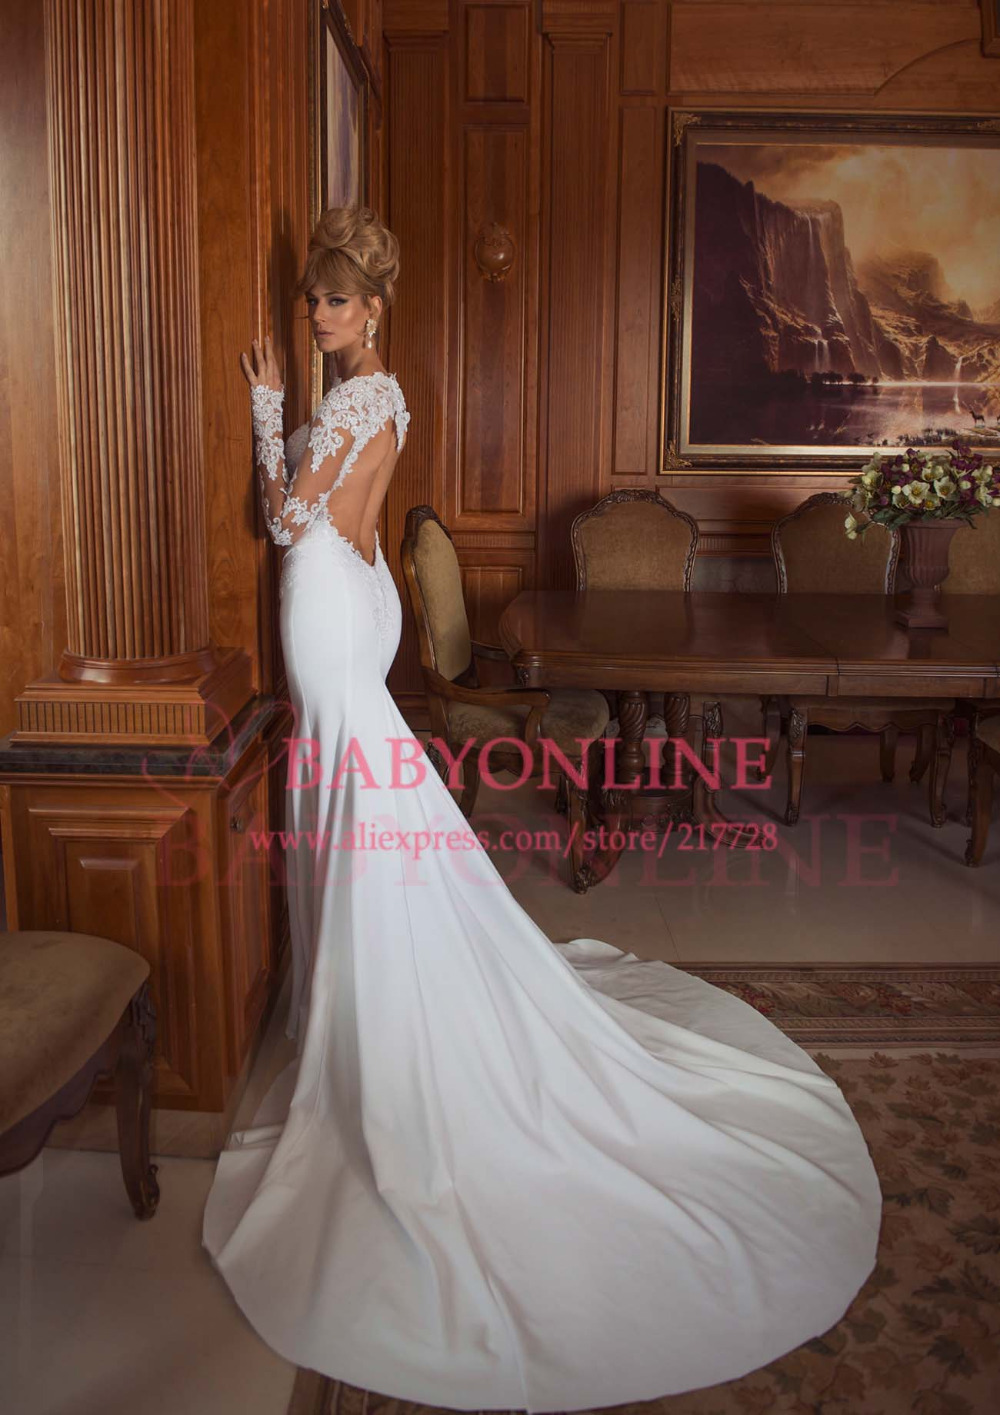 natural wedding dresses backless wedding dresses Fabulous Sheath Column Straps Natural Train Lace Ivory Champagne Sleeveless Backless Wedding Dress with